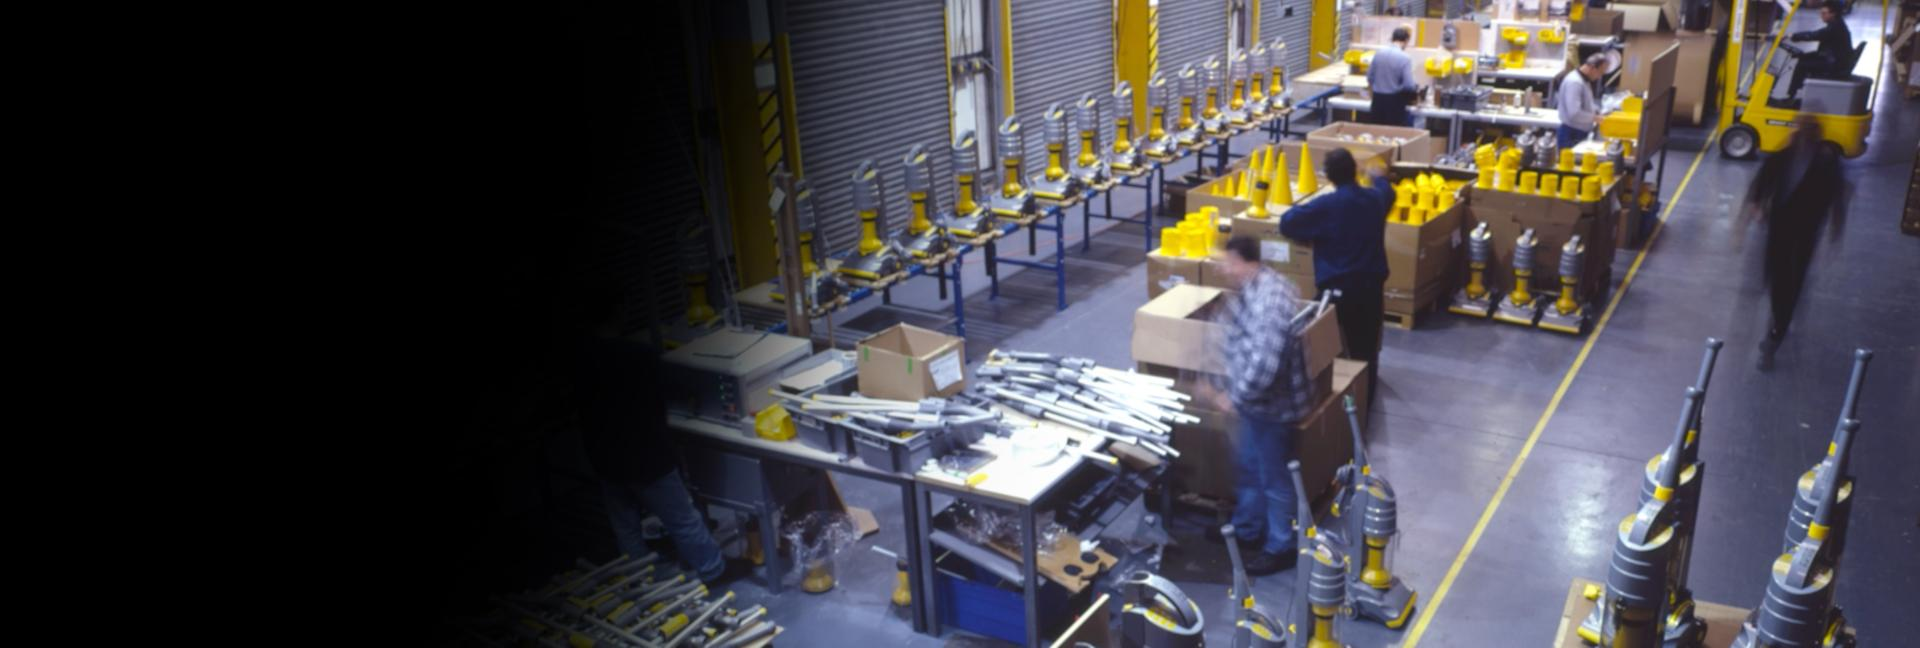 View of the DCO1 production line showing Dyson machines